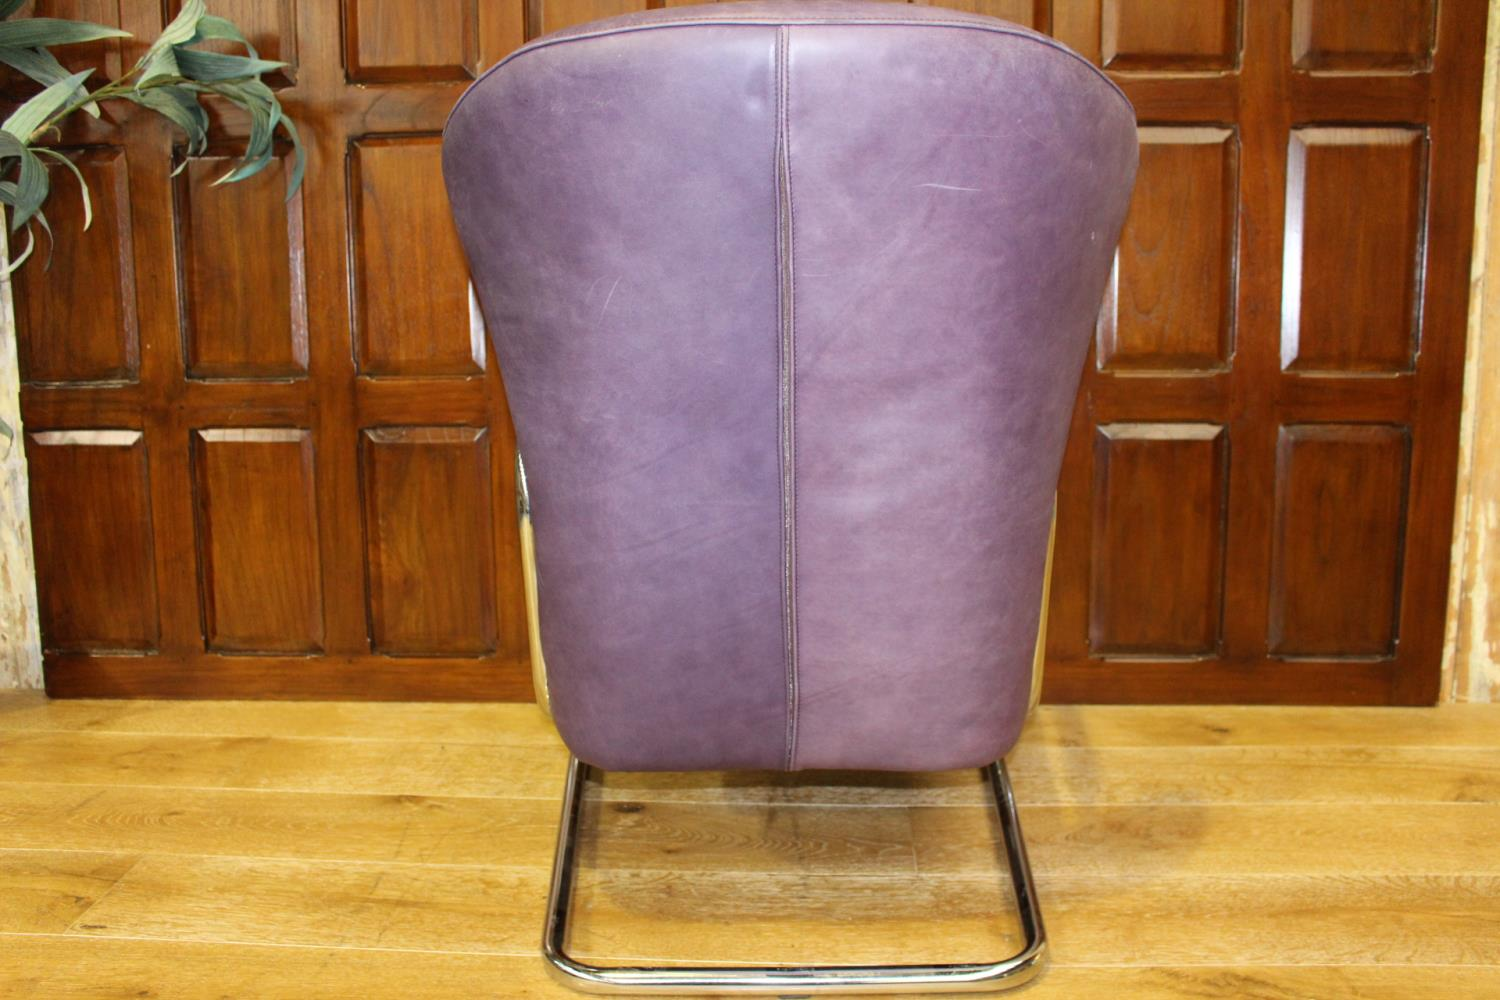 Leather designer chair - Image 2 of 2